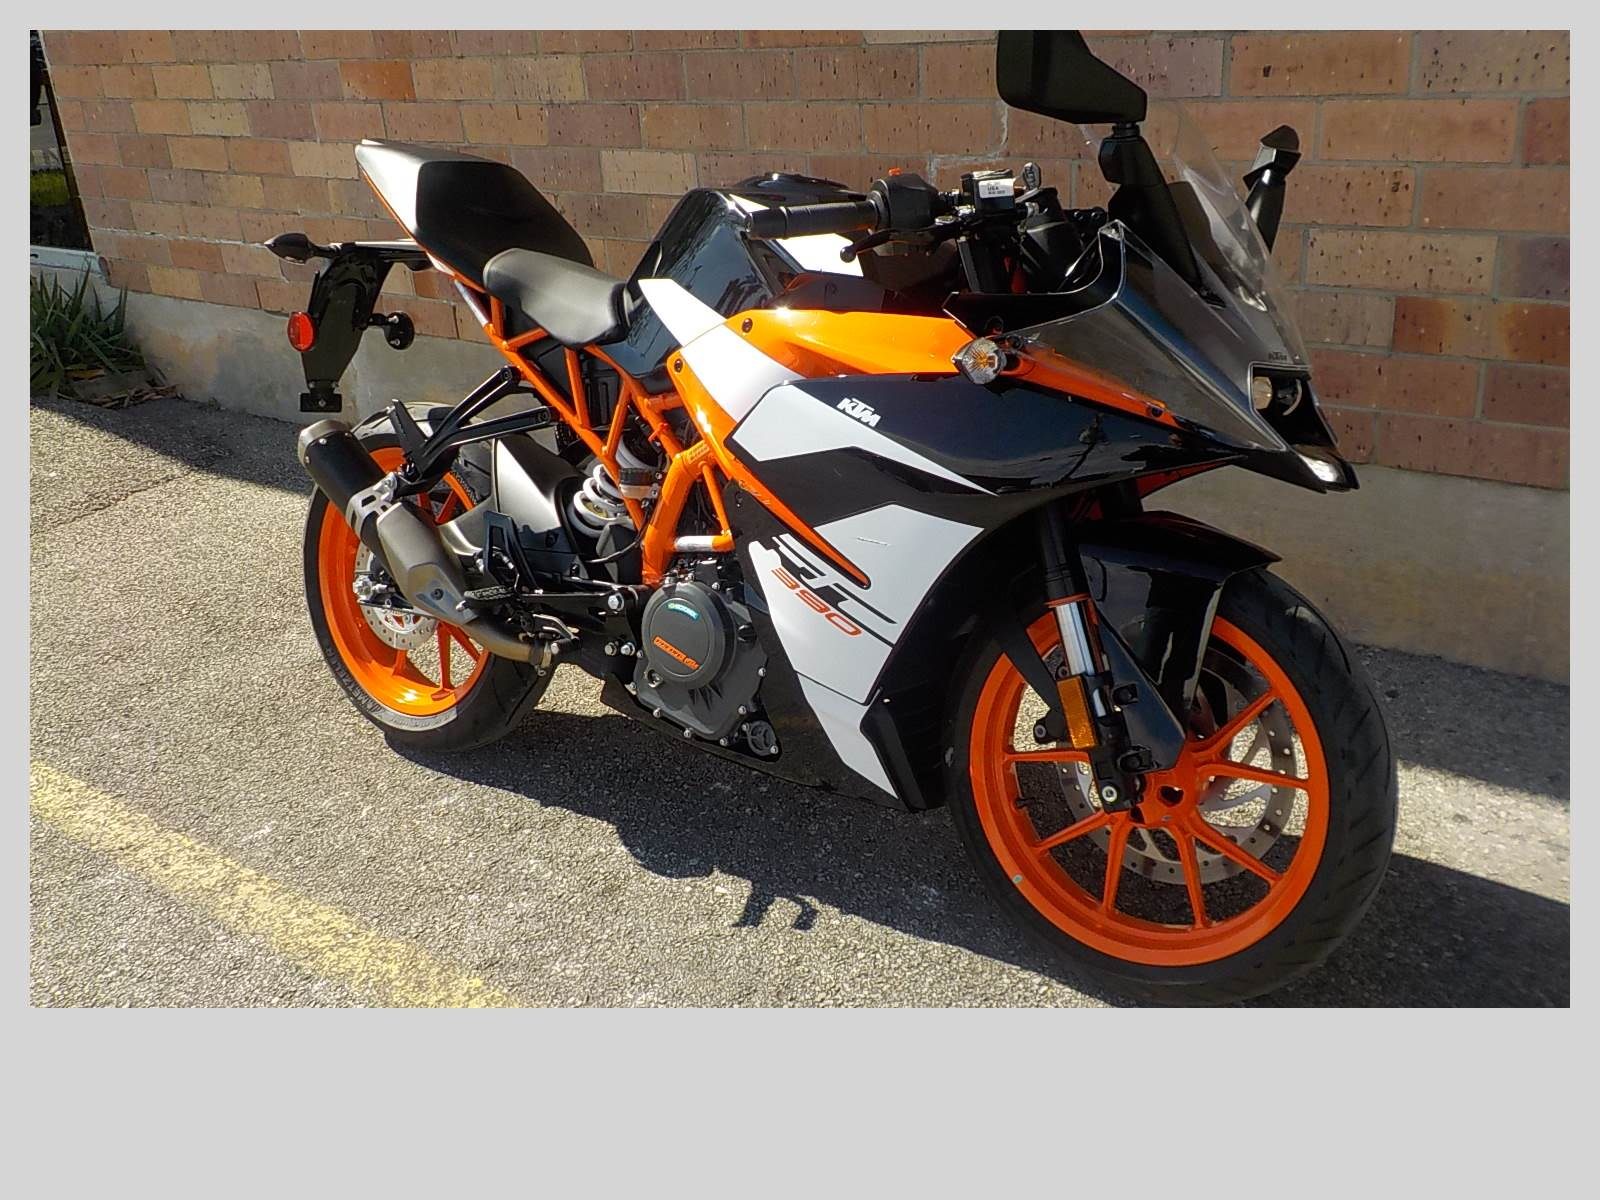 2018 KTM RC 390 in San Antonio, Texas - Photo 3